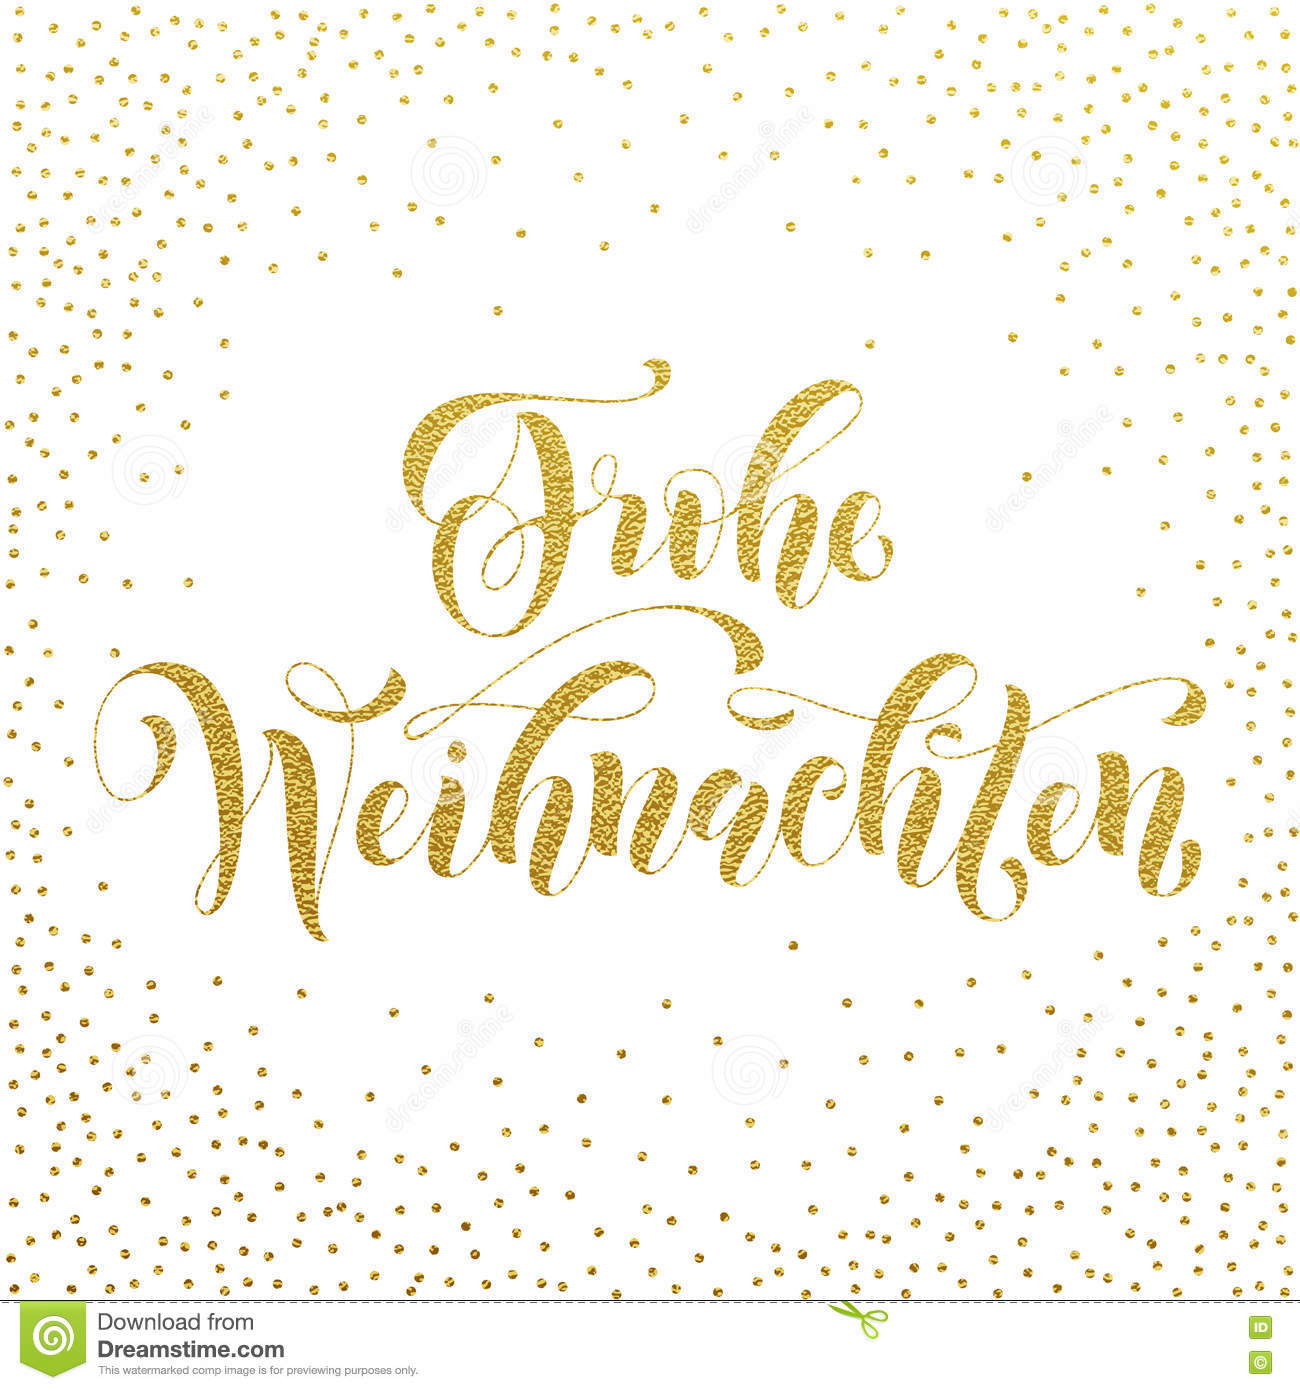 frohe weihnachten german christmas gold greeting stock illustration illustration of letter